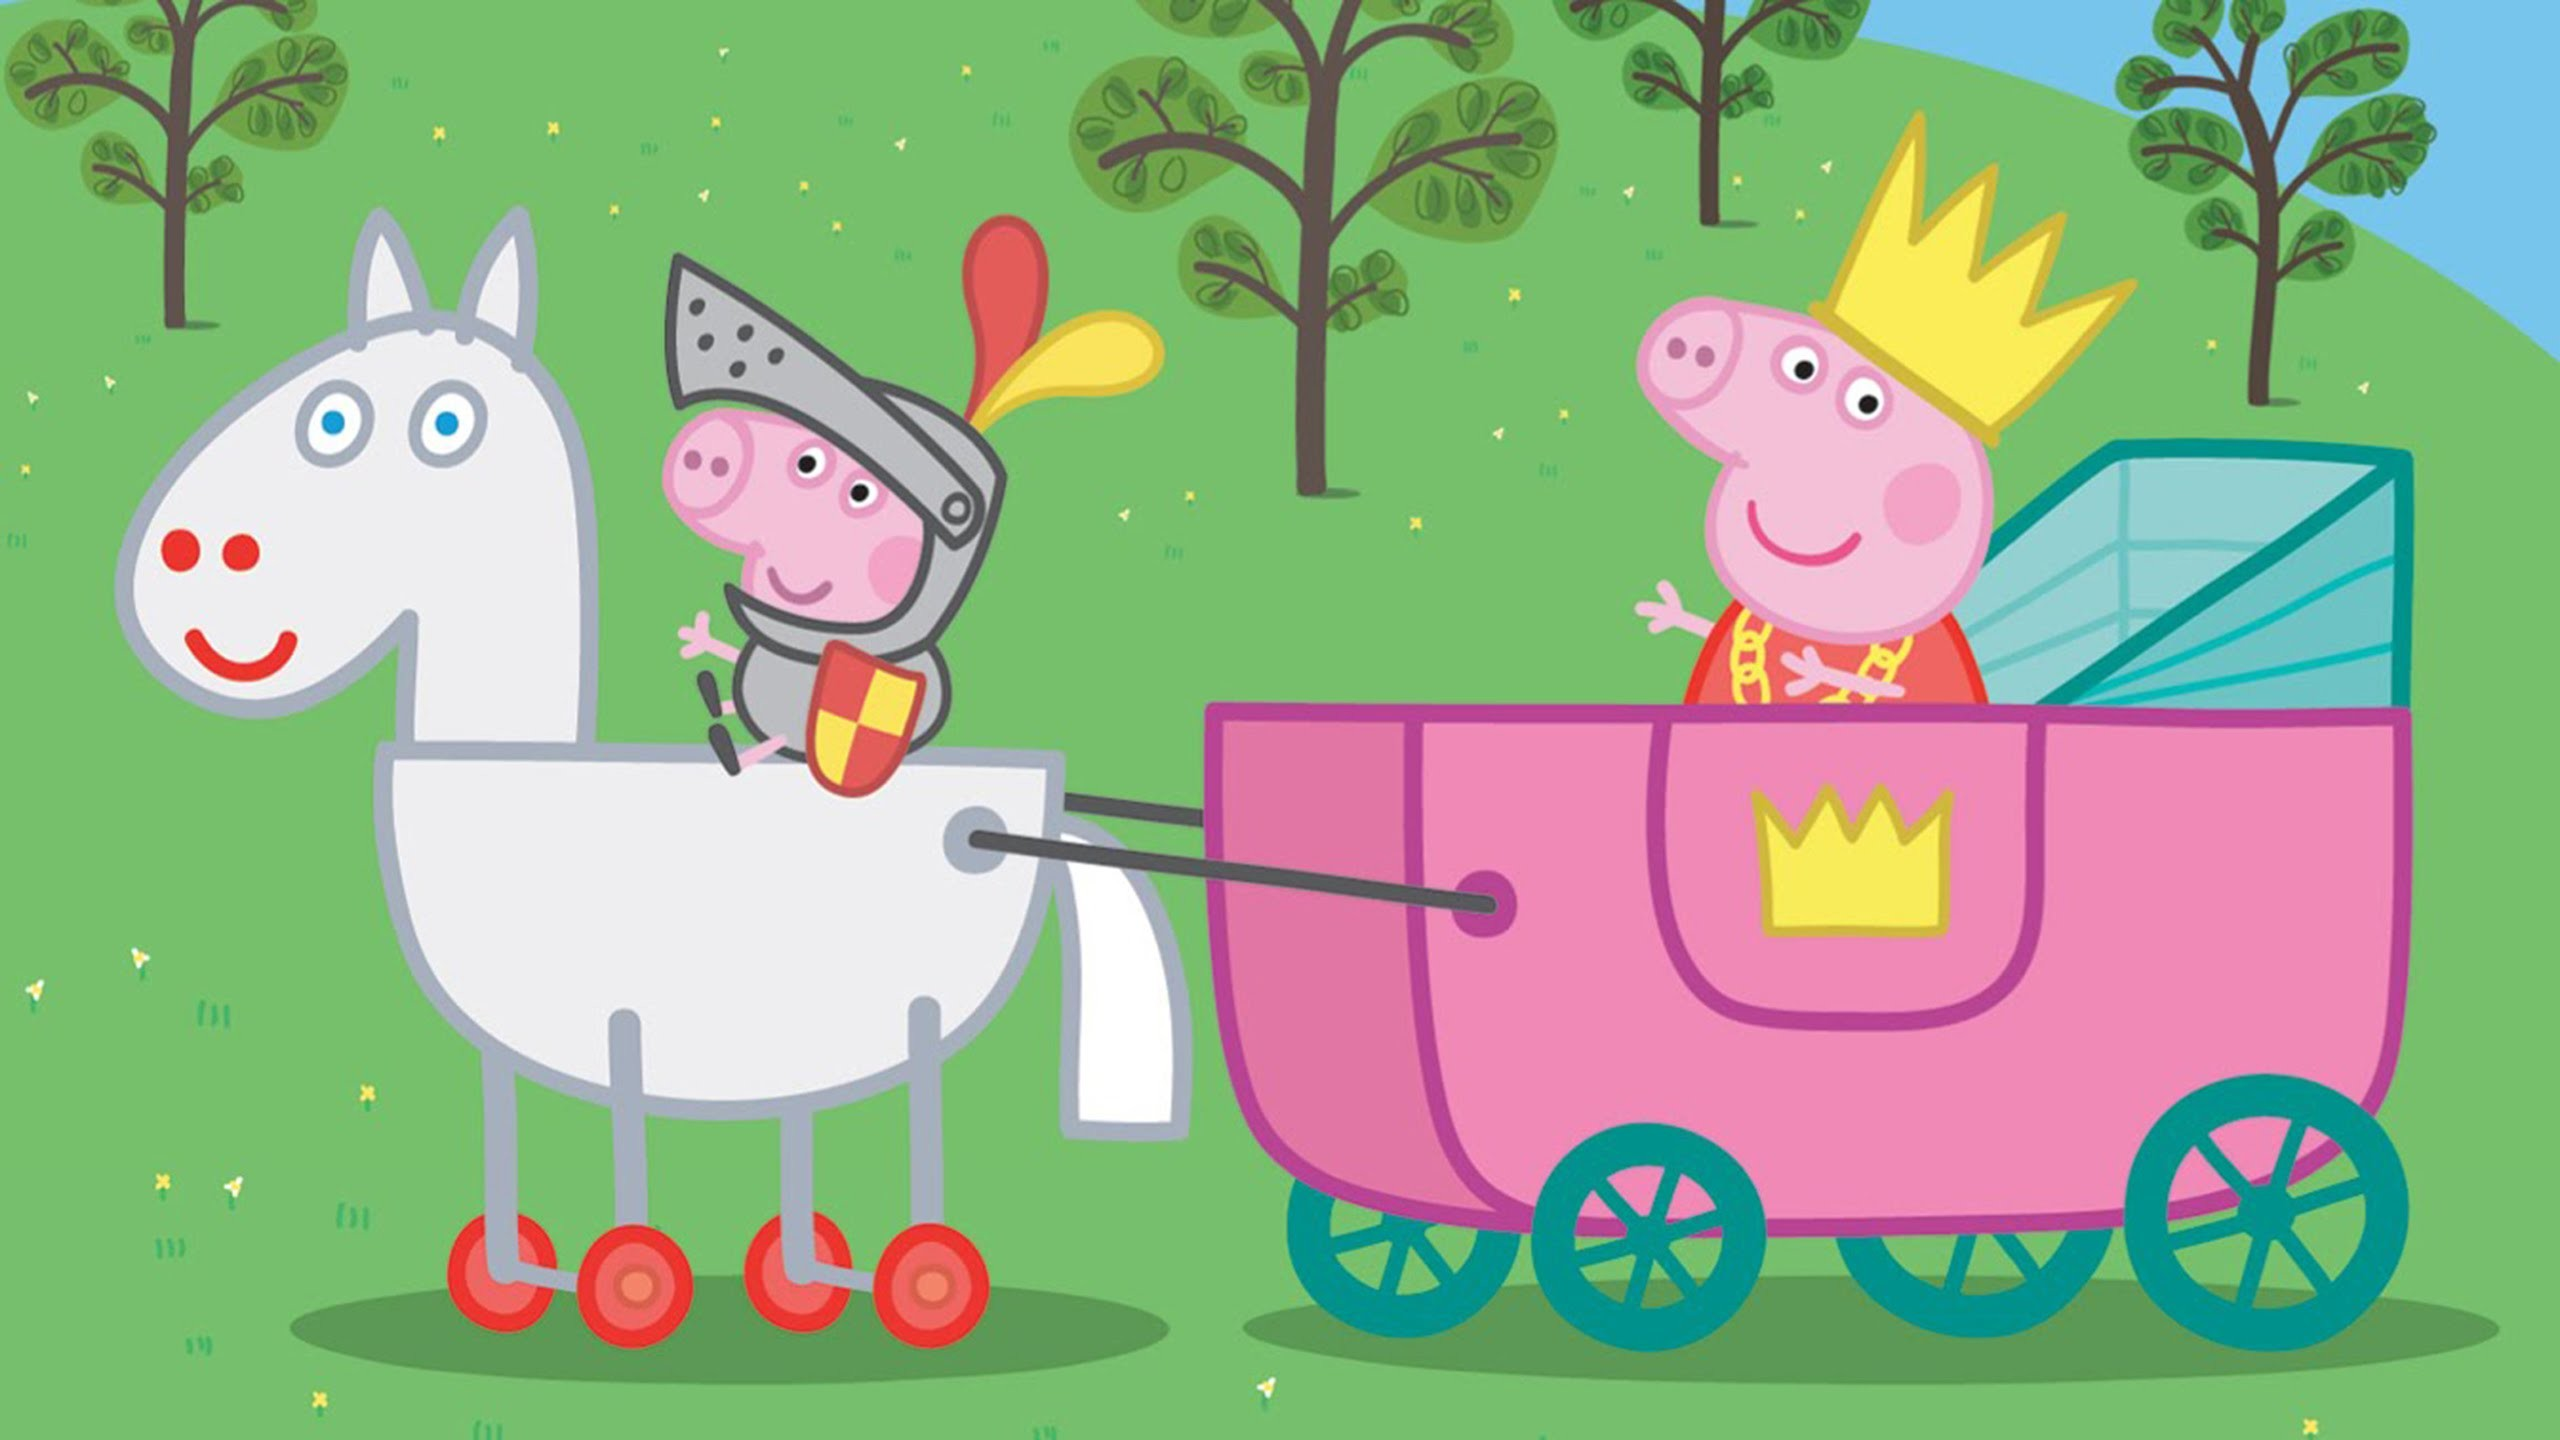 Peppa Pig Coloring Pages For Kids Peppa Pig Coloring Peppa Pig Princess Peppa And Sir George 2560x1440 Wallpaper Teahub Io